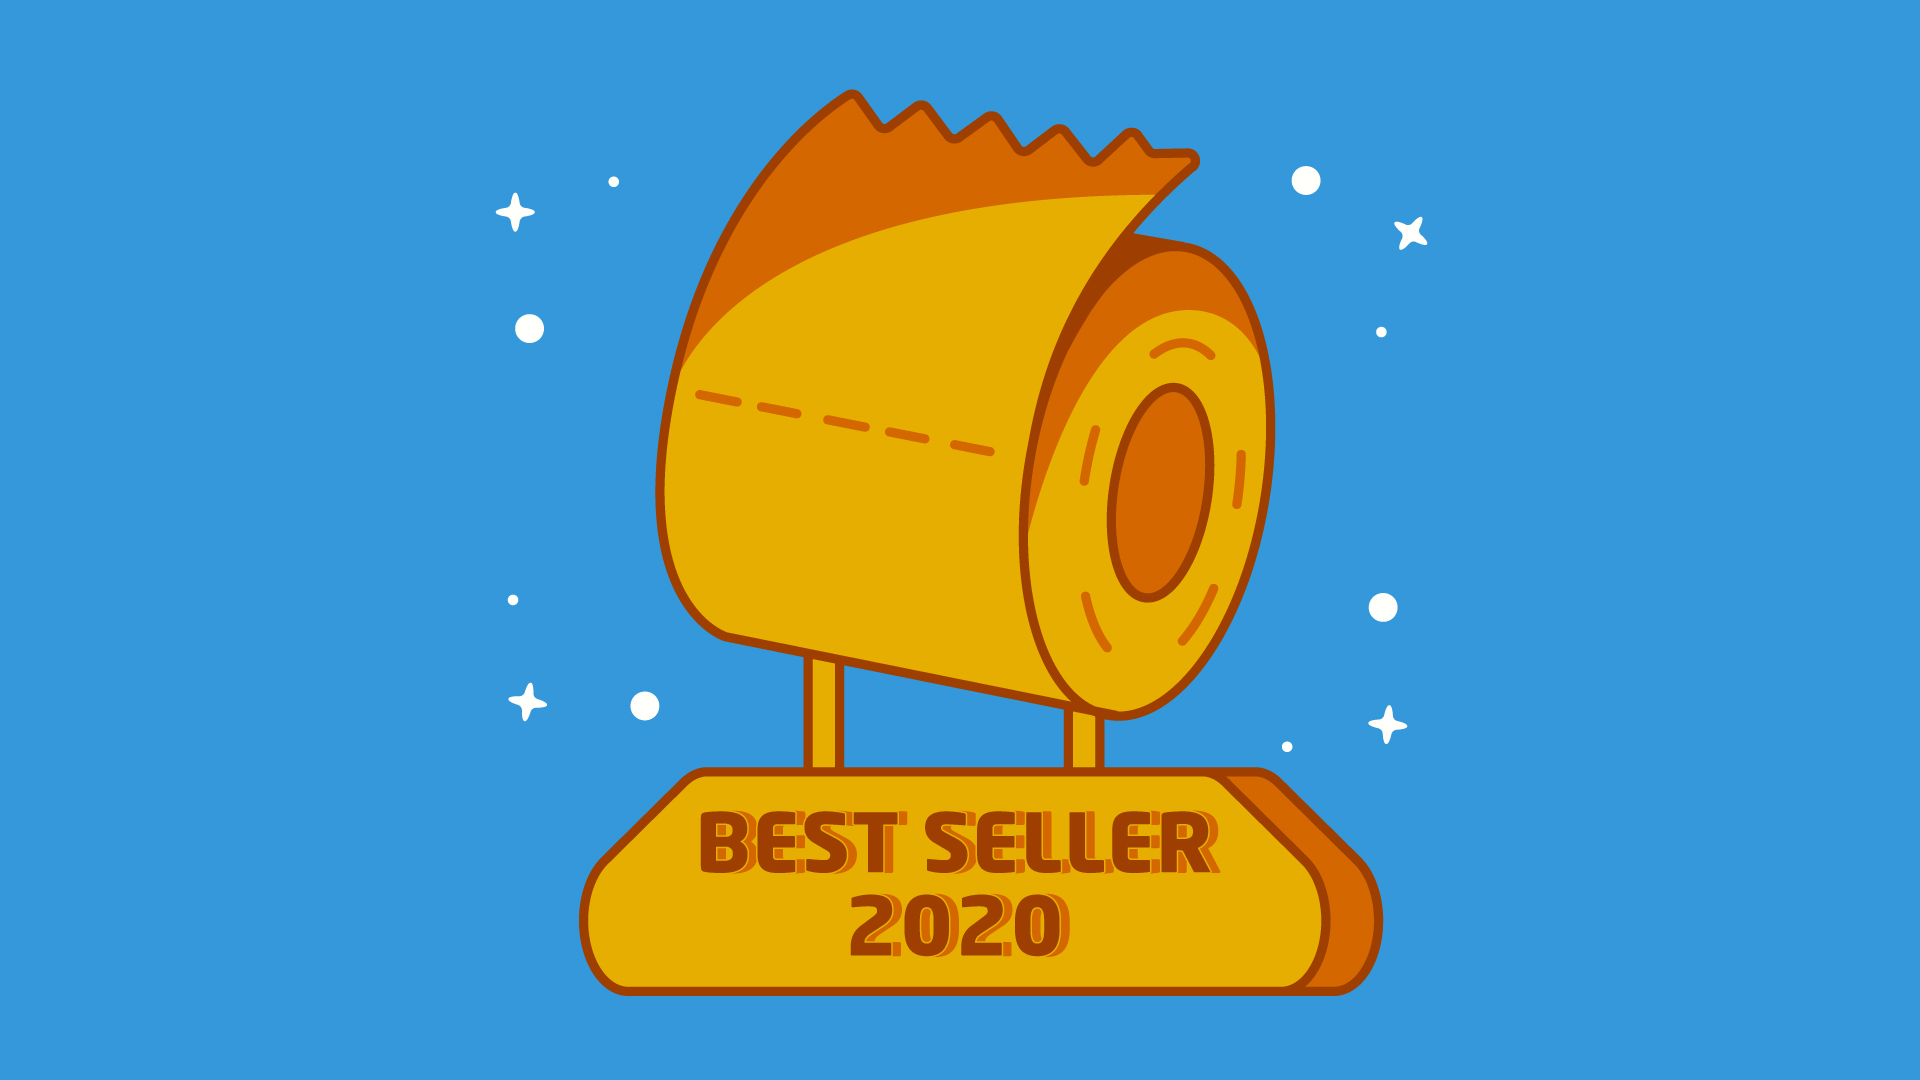 Best_Seller_2020_Toilet_Paper